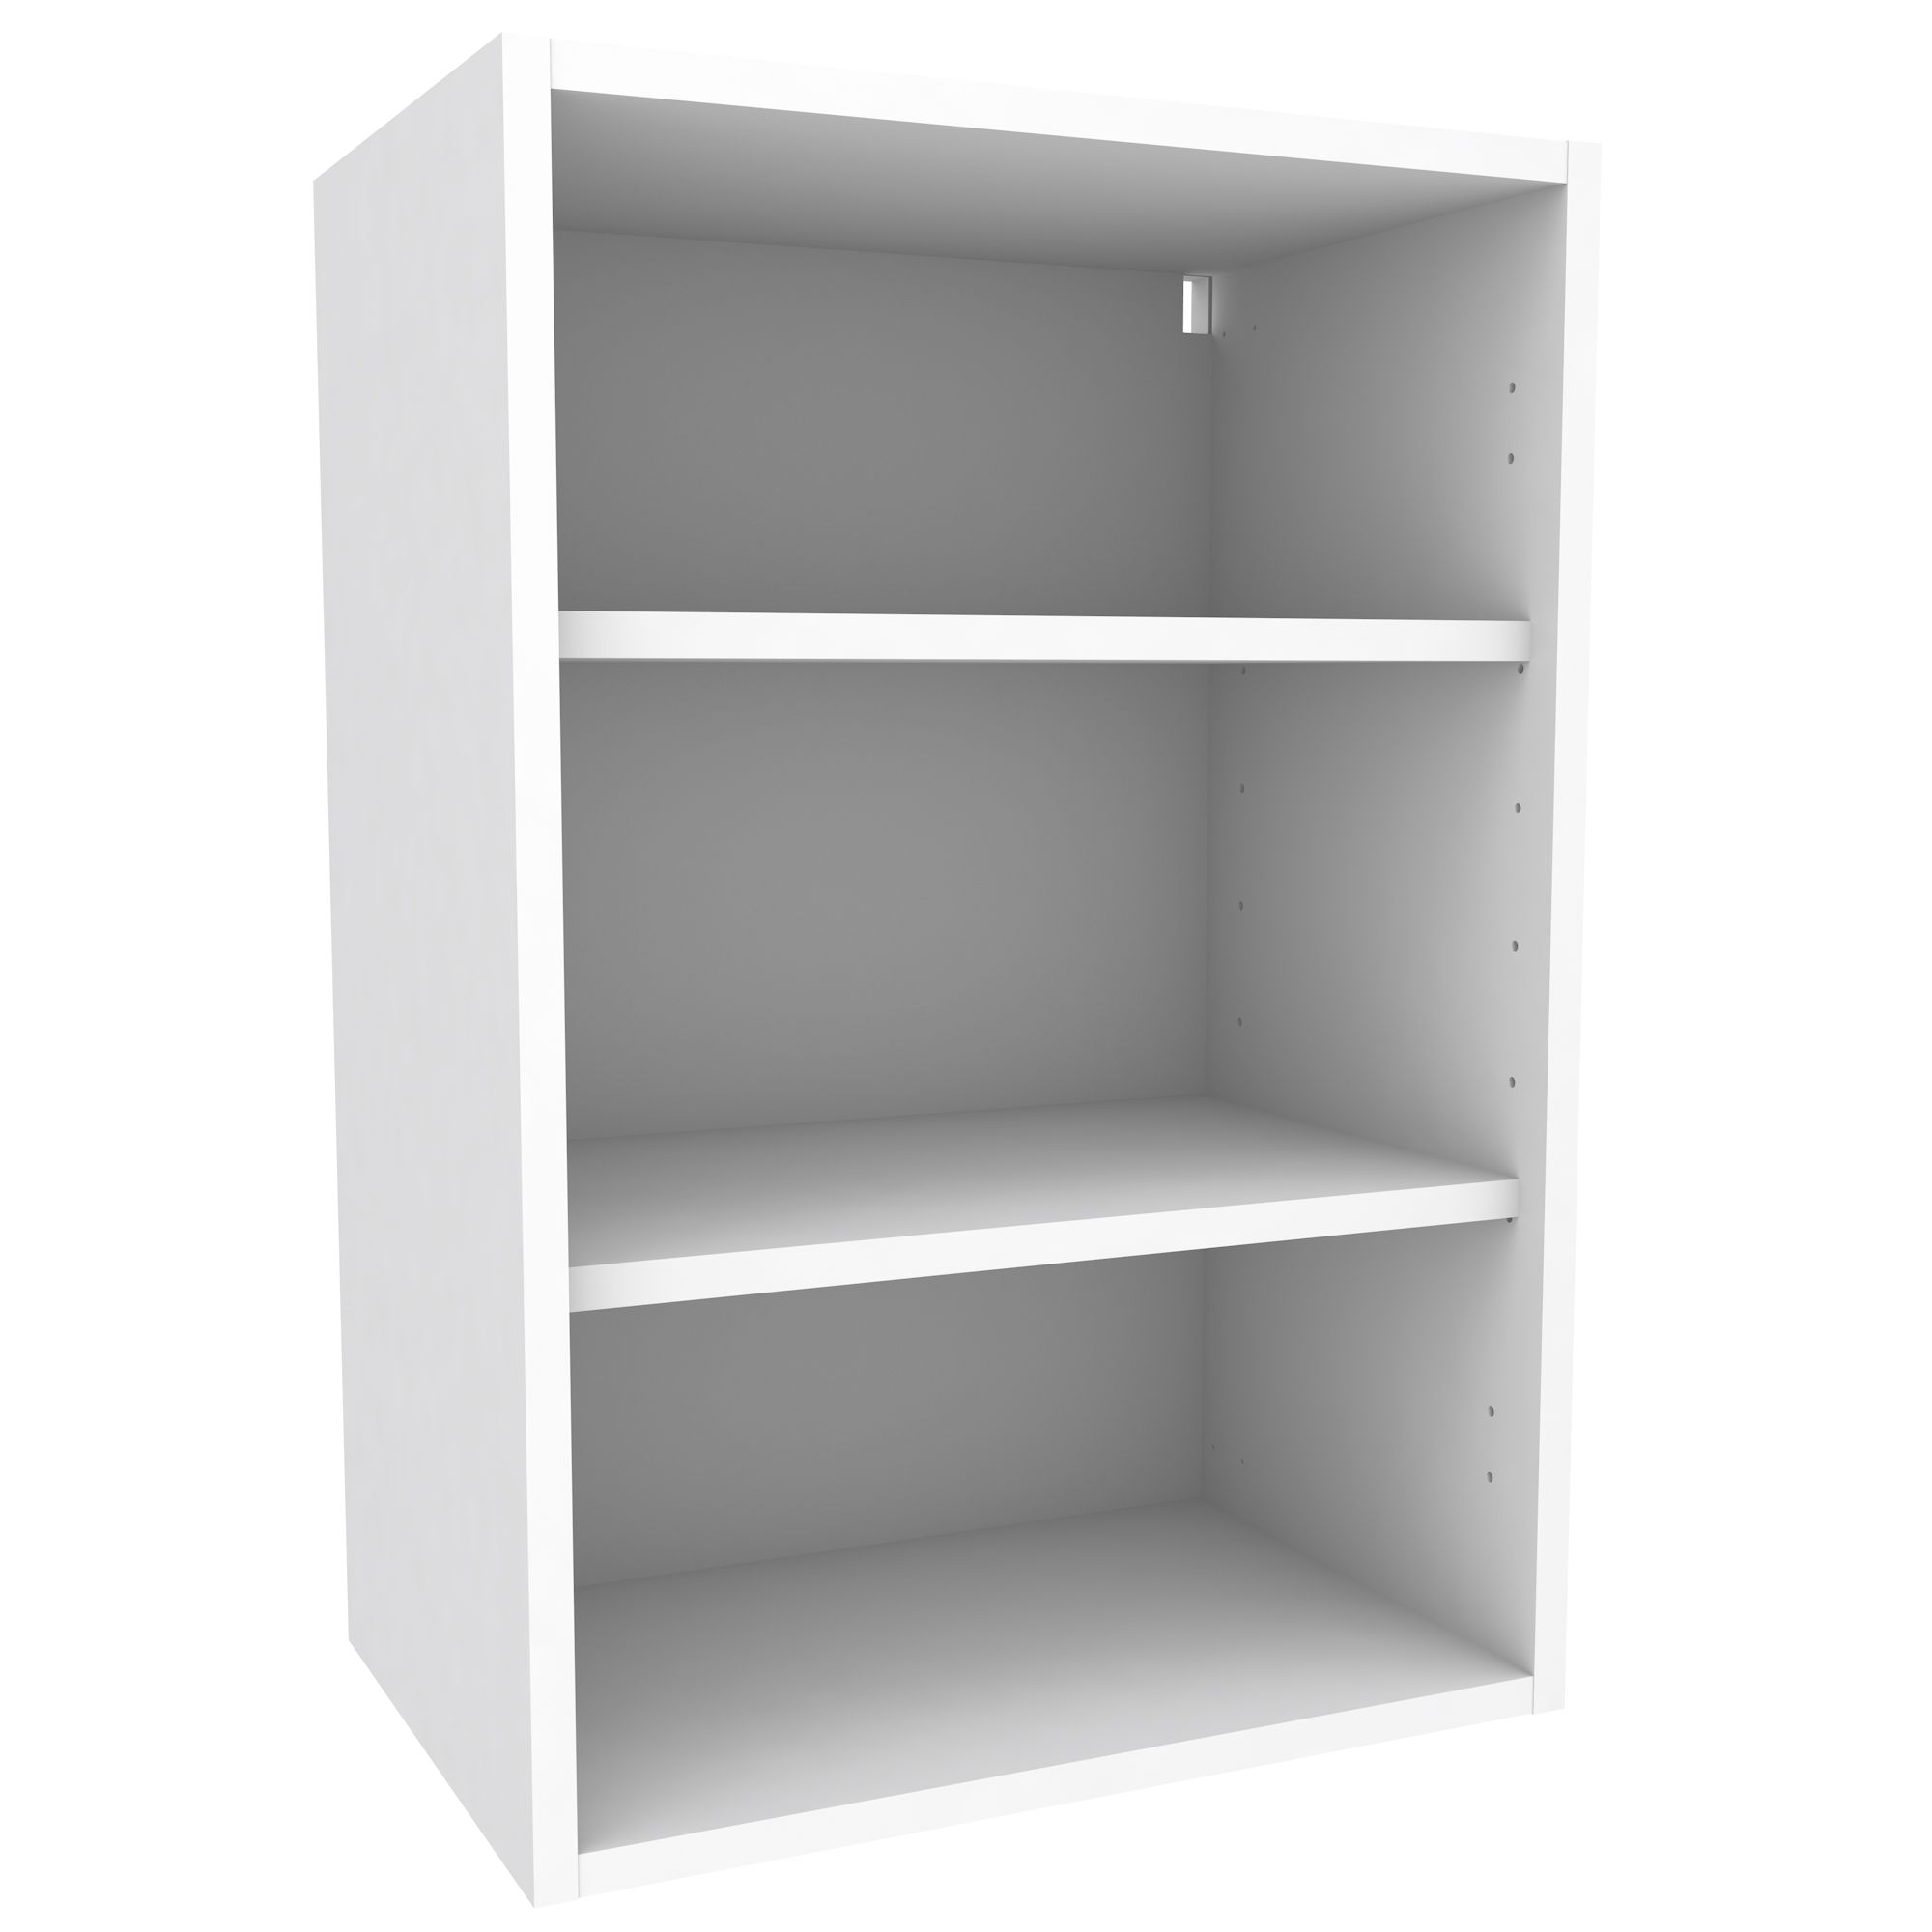 Cooke Lewis White Standard Wall Cabinet W 500mm Departments DIY